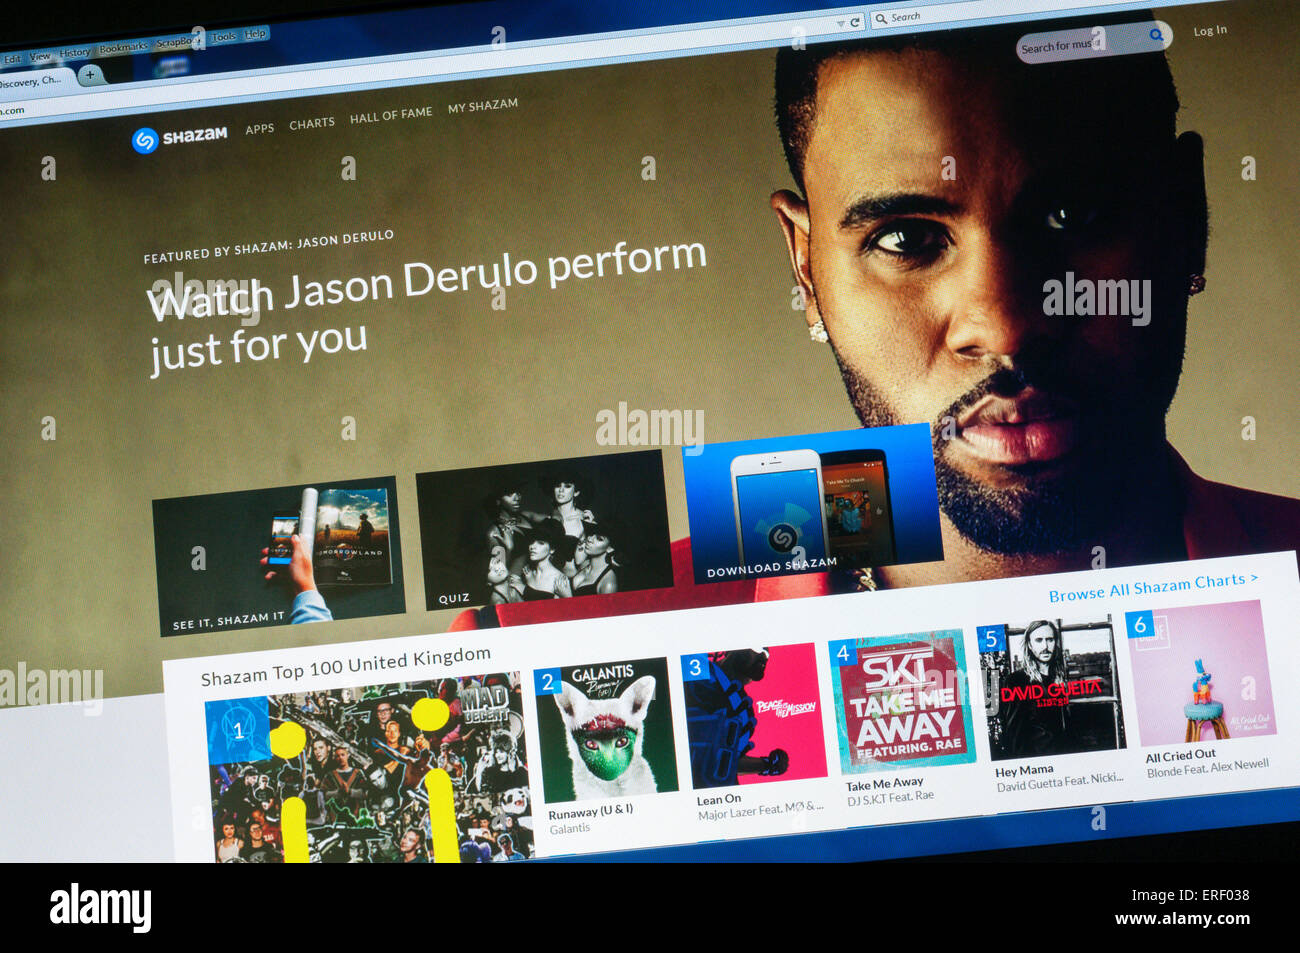 The homepage of the website for the music recognition app Shazam. - Stock Image